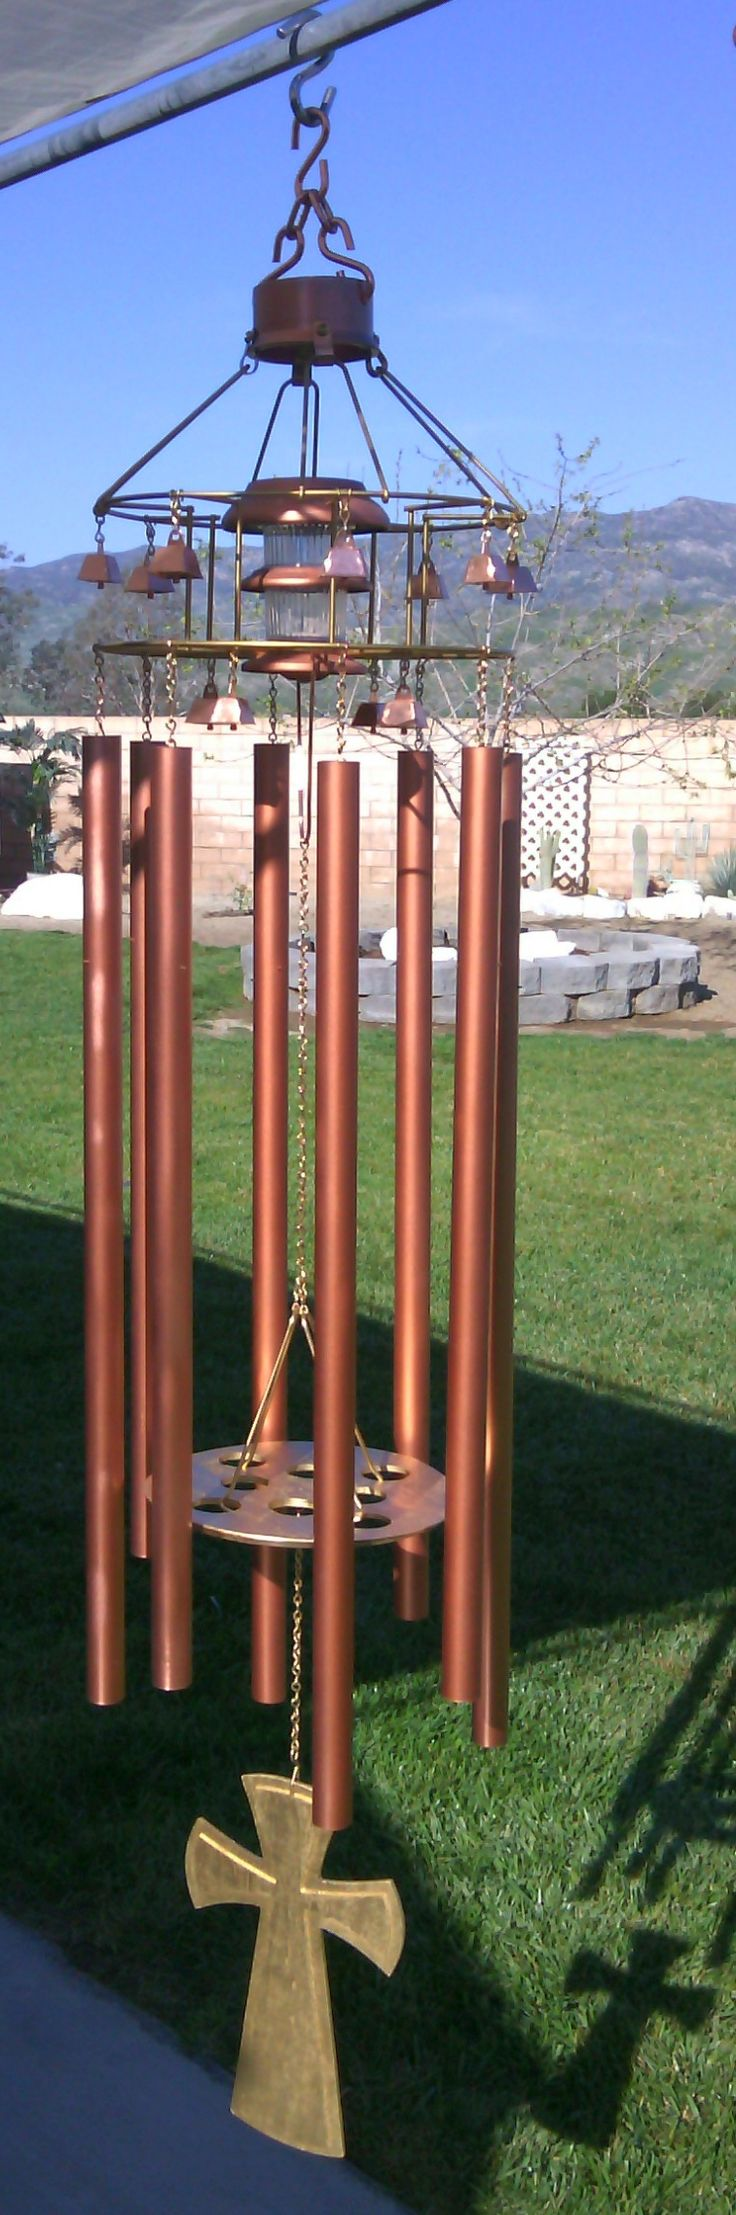 Bill Moyer used eight, one-inch copper pipes with a pentatonic scale tuning for these beautiful wind chimes.  Excellent article by Lee Hite gives in-depth info on every facet of the art and process of making wind chimes.